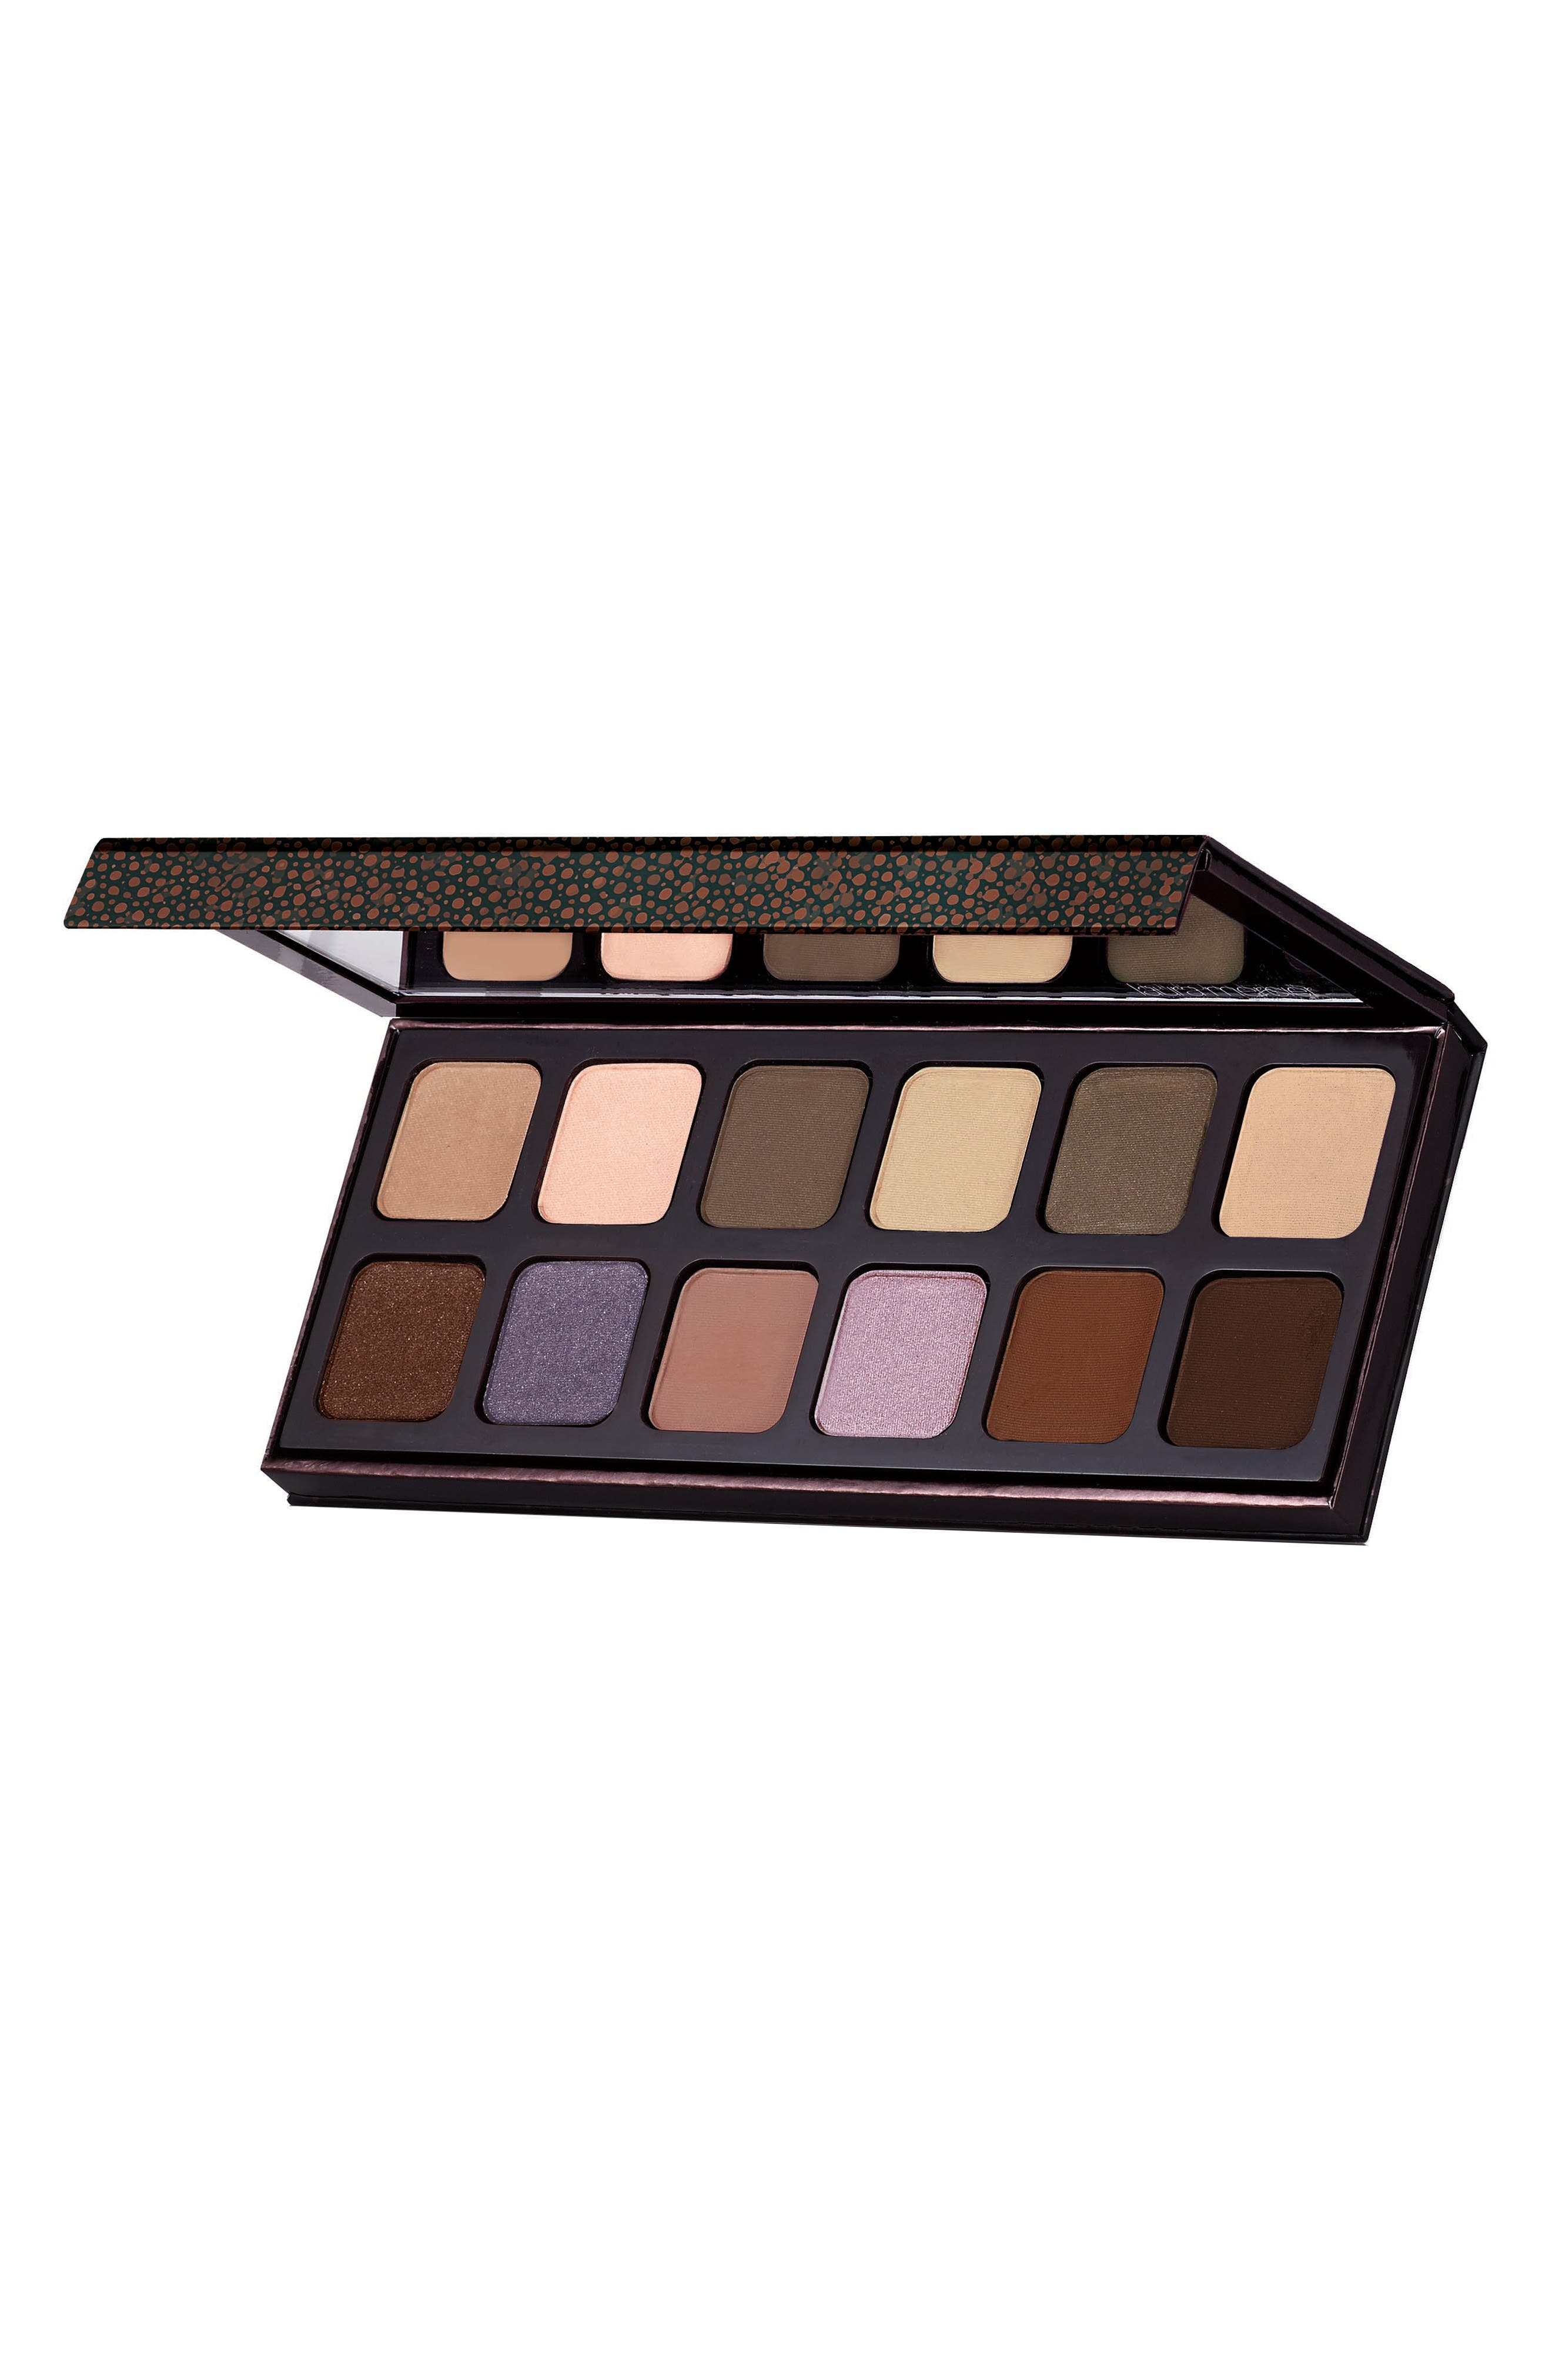 Extreme Neutrals Eyeshadow Palette,                             Alternate thumbnail 2, color,                             NO COLOR